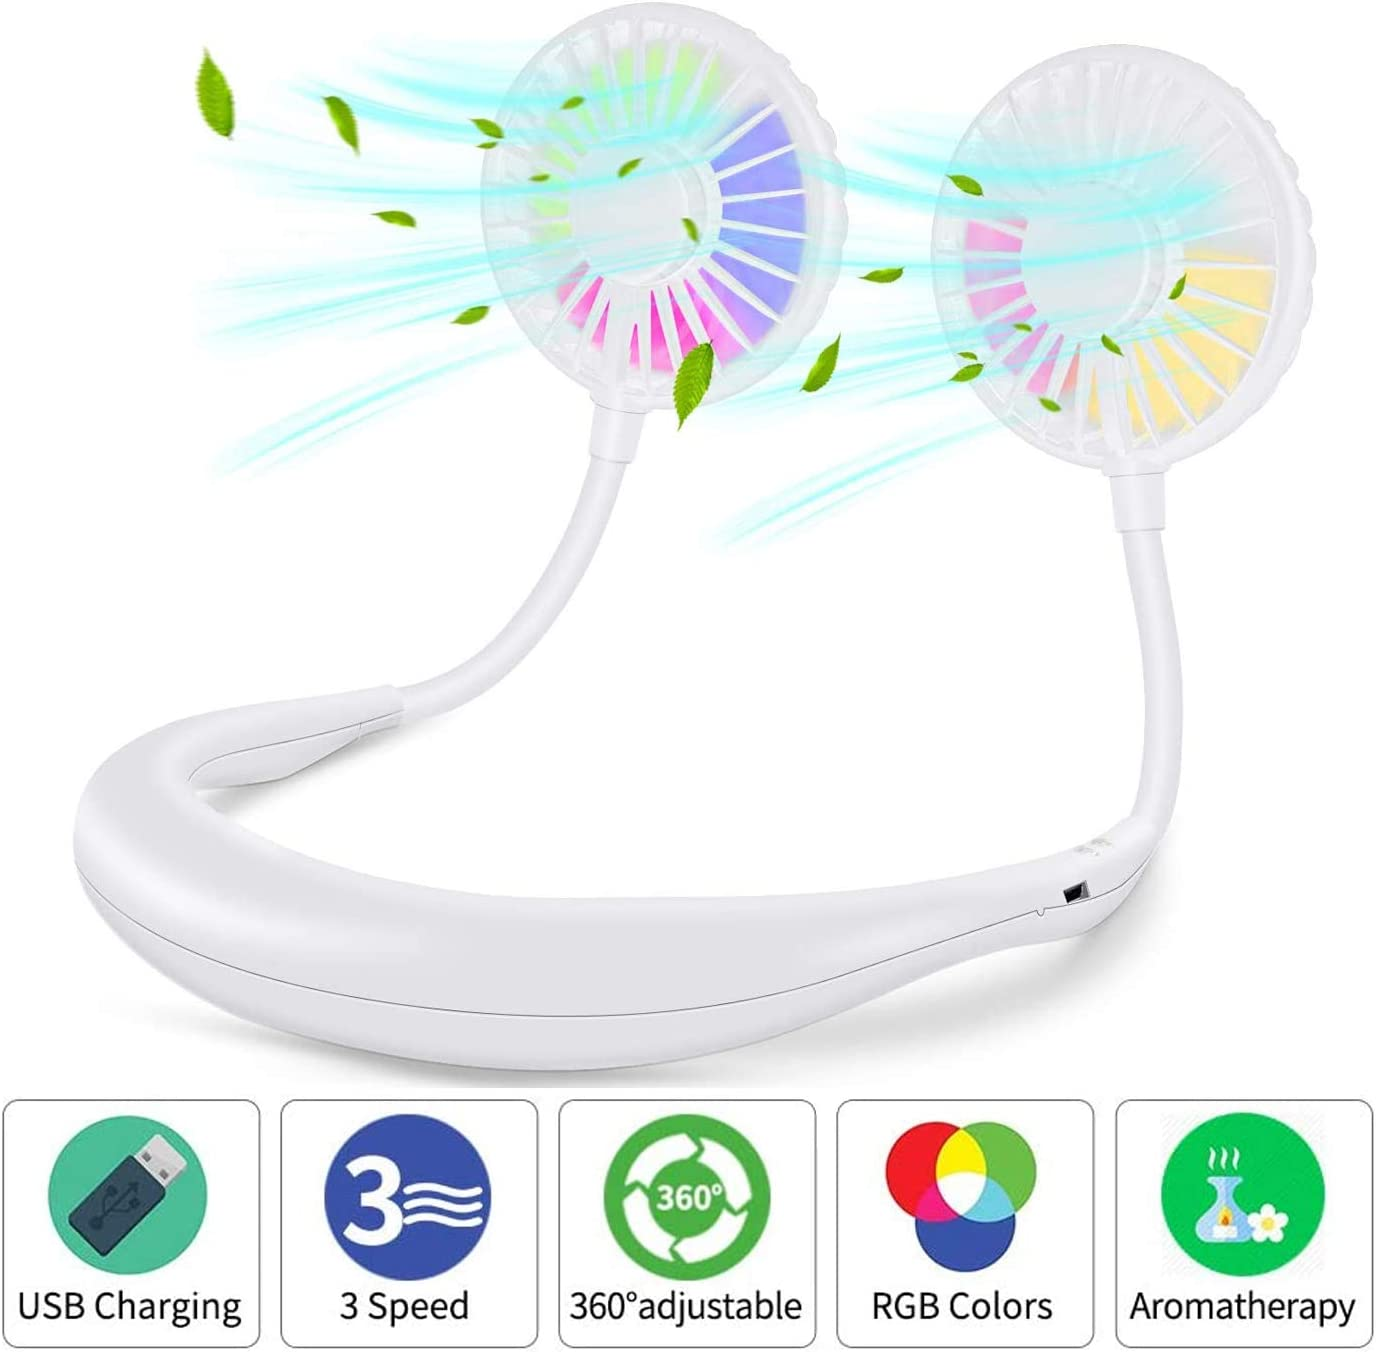 Portable USB Neck Fan,Premium Rechargeable HandsFree Personal Fan Handheld Fan with 3 Speed, 7 Colors LED lights for Men and Women Sports Travel Office Camping(White)